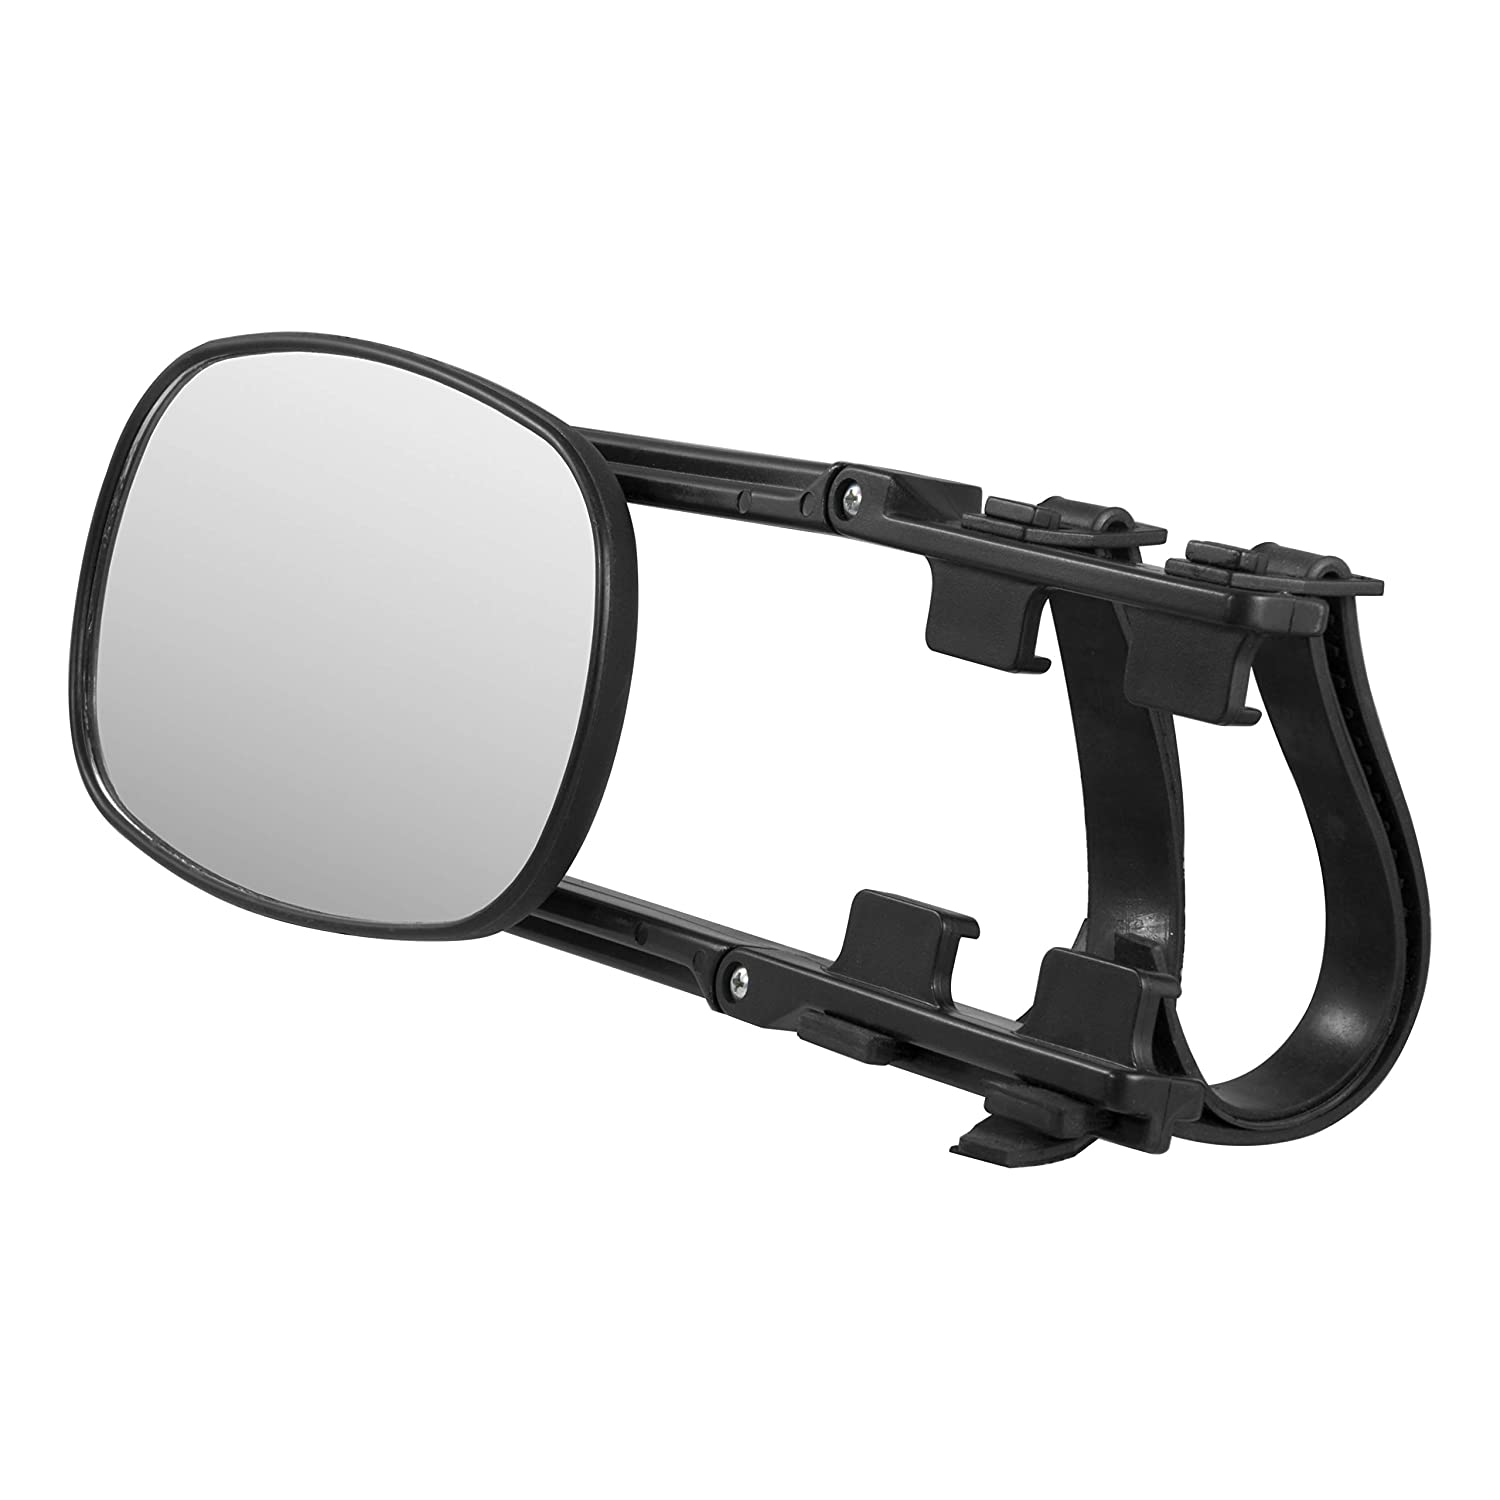 CURT 20002 5-Inch x 7-1//2-Inch Universal Strap-On Adjustable Extendable Towing Mirror